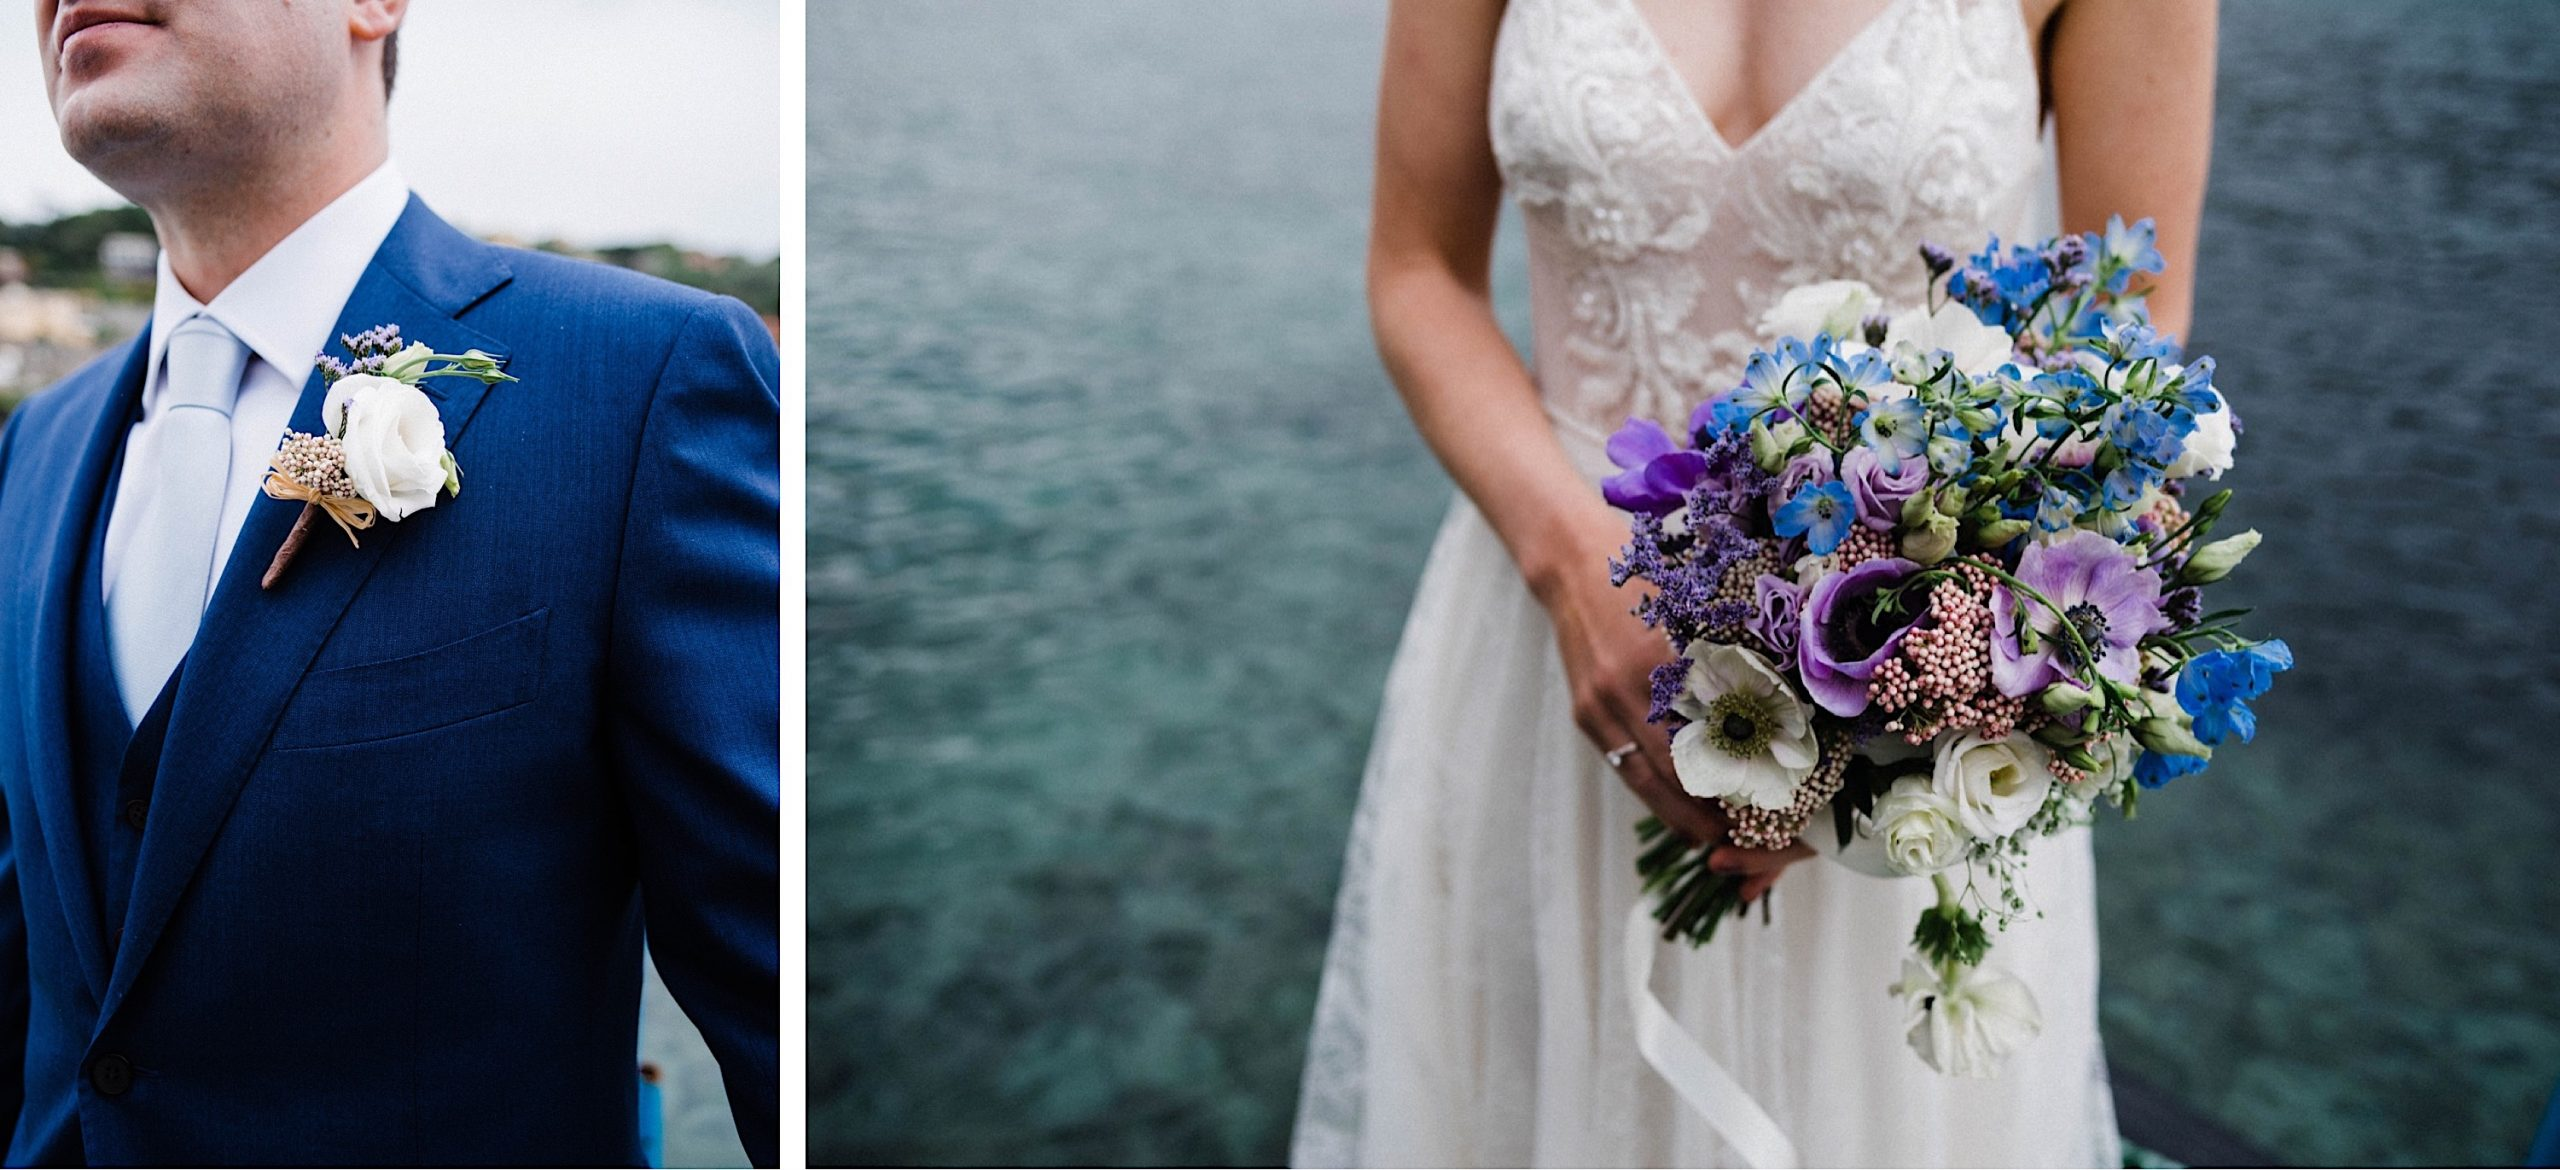 Two detail photos of the bride's bouquet and the groom's buttonhole at their Destination Wedding on the Italian Riviera.